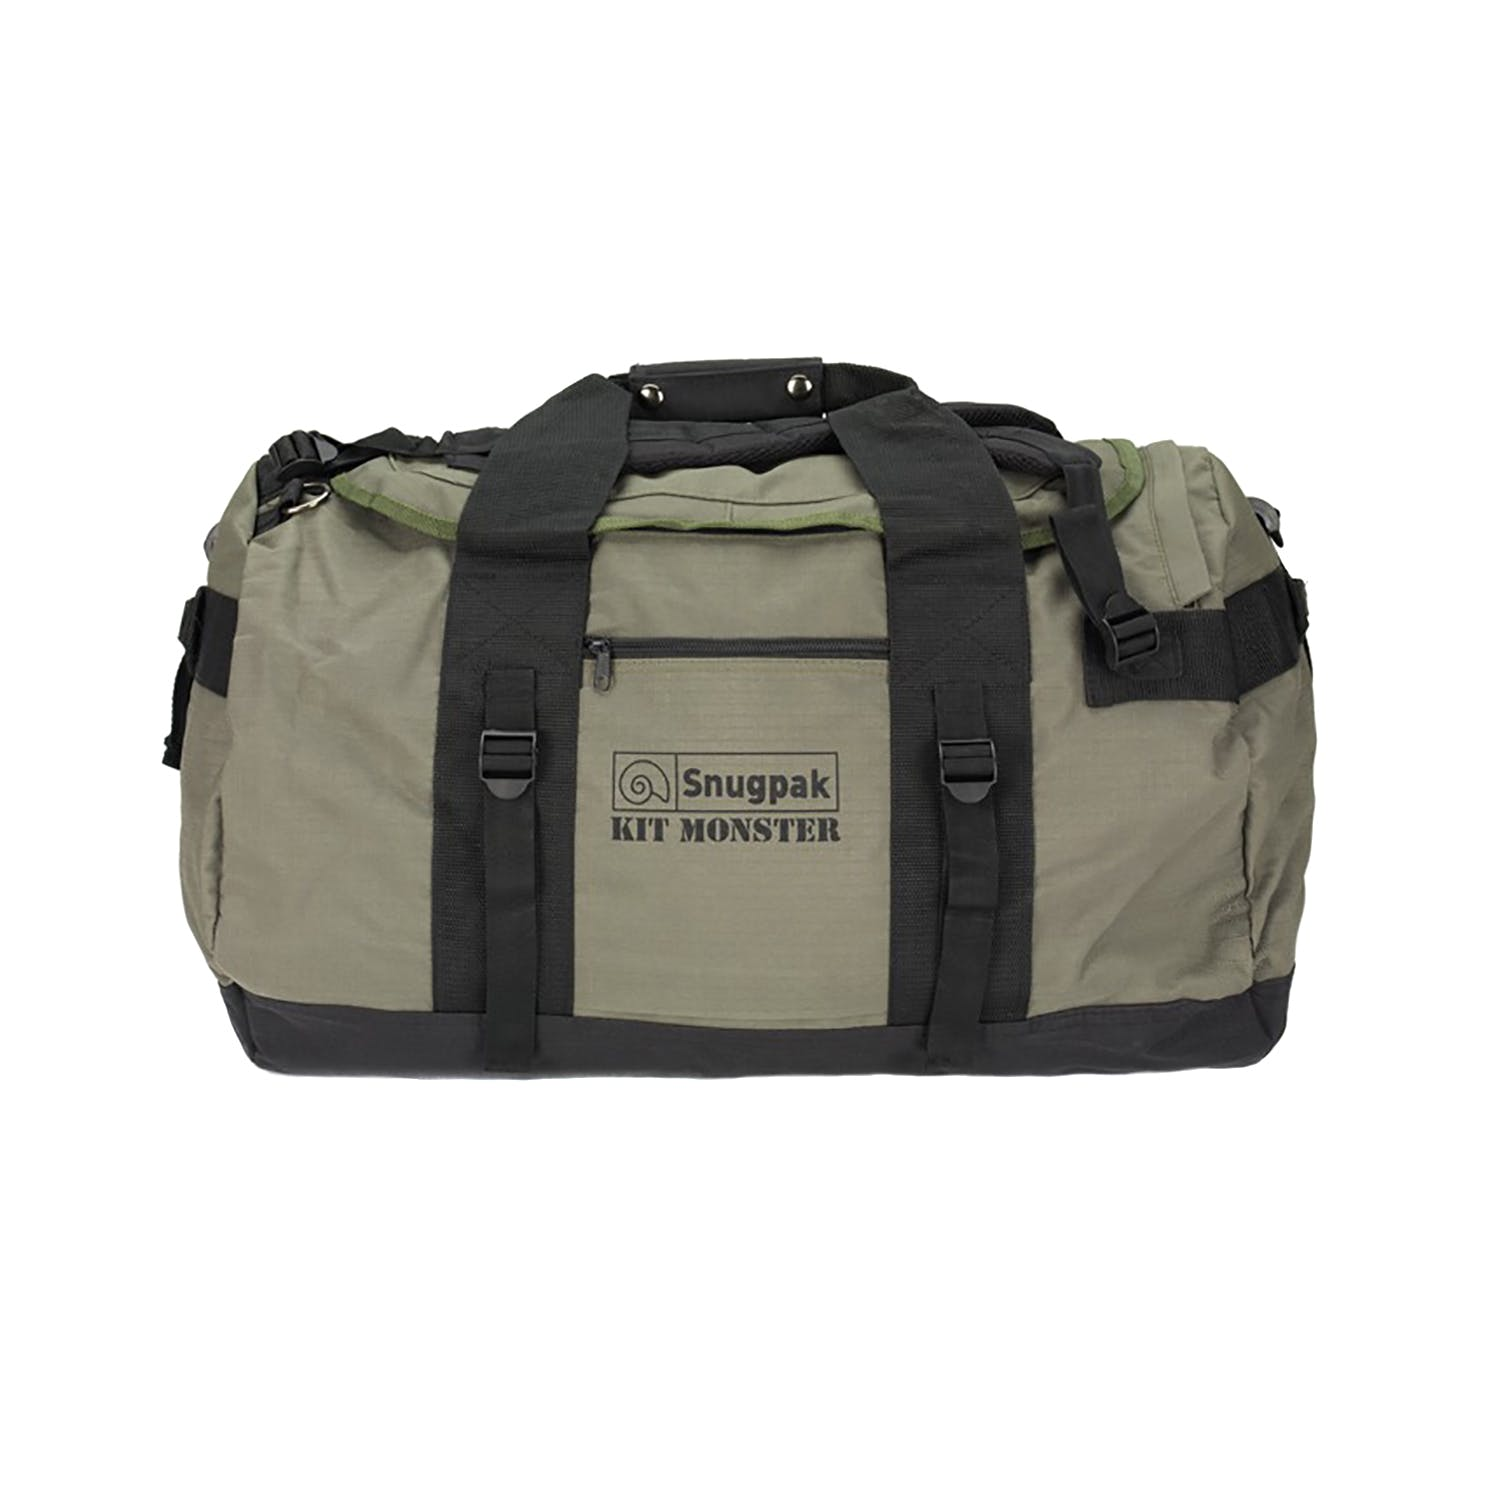 Snugpak Kit Monster 65 Gear Bag From Nightgear Uk